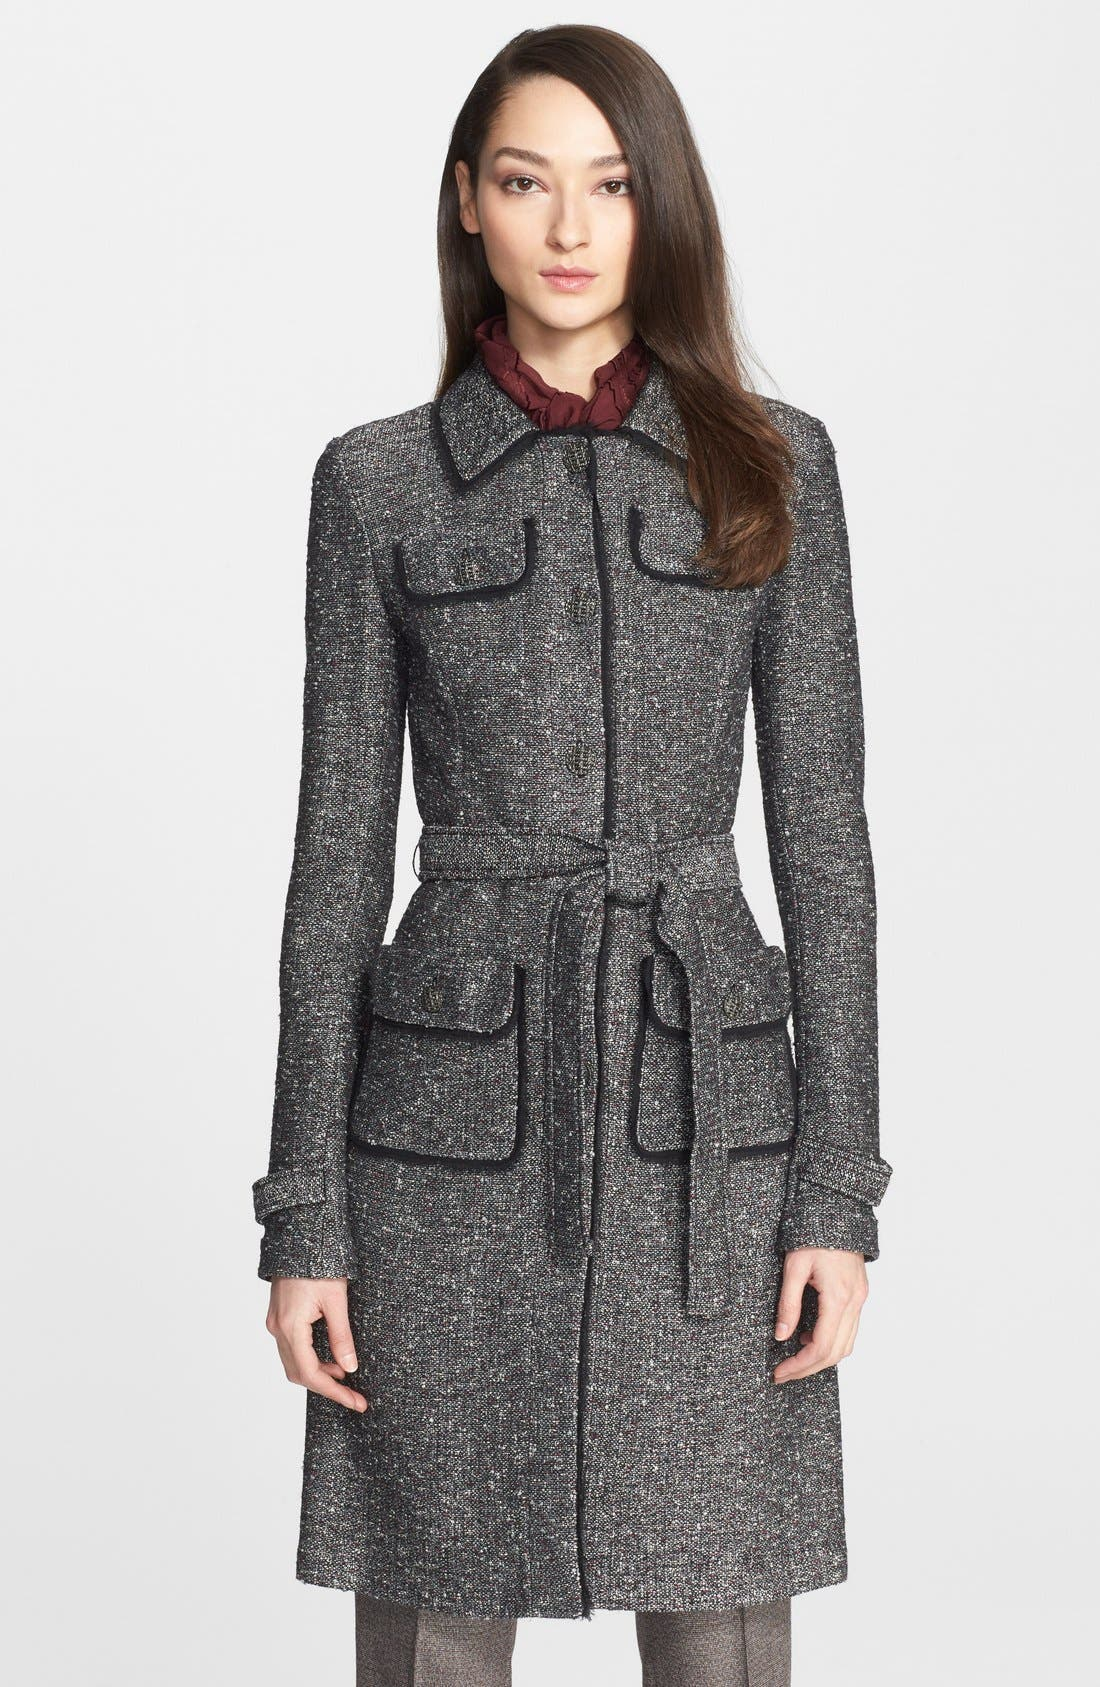 Alternate Image 1 Selected - St. John Collection Flecked Tweed Knit Topper